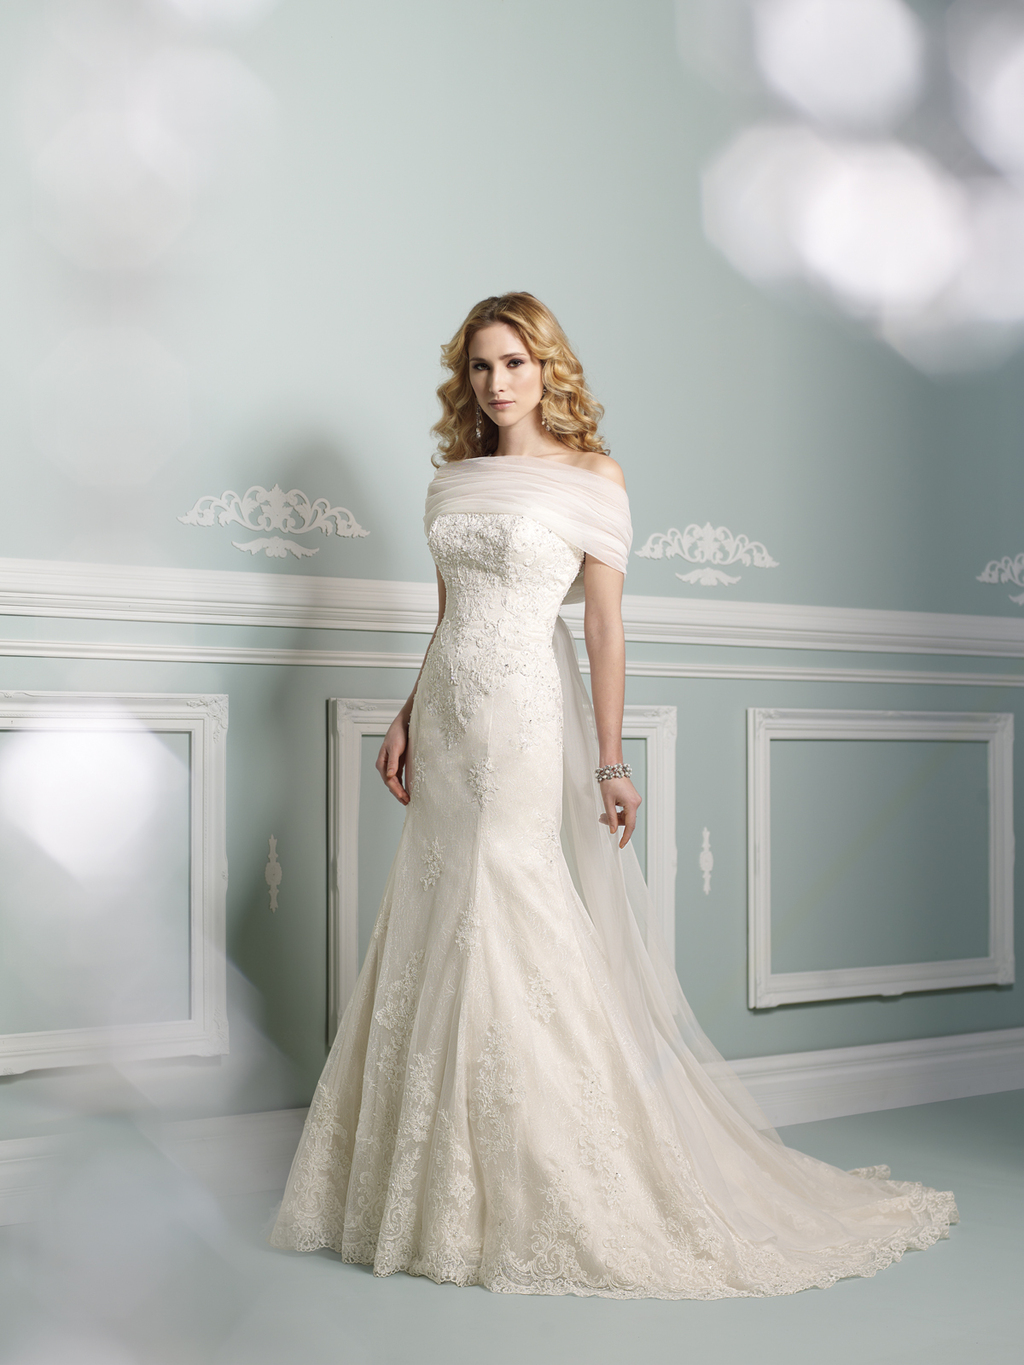 Wedding-dress-james-clifford-collection-mon-cheri-fall-2012-bridal-gown-21265-wrap.full